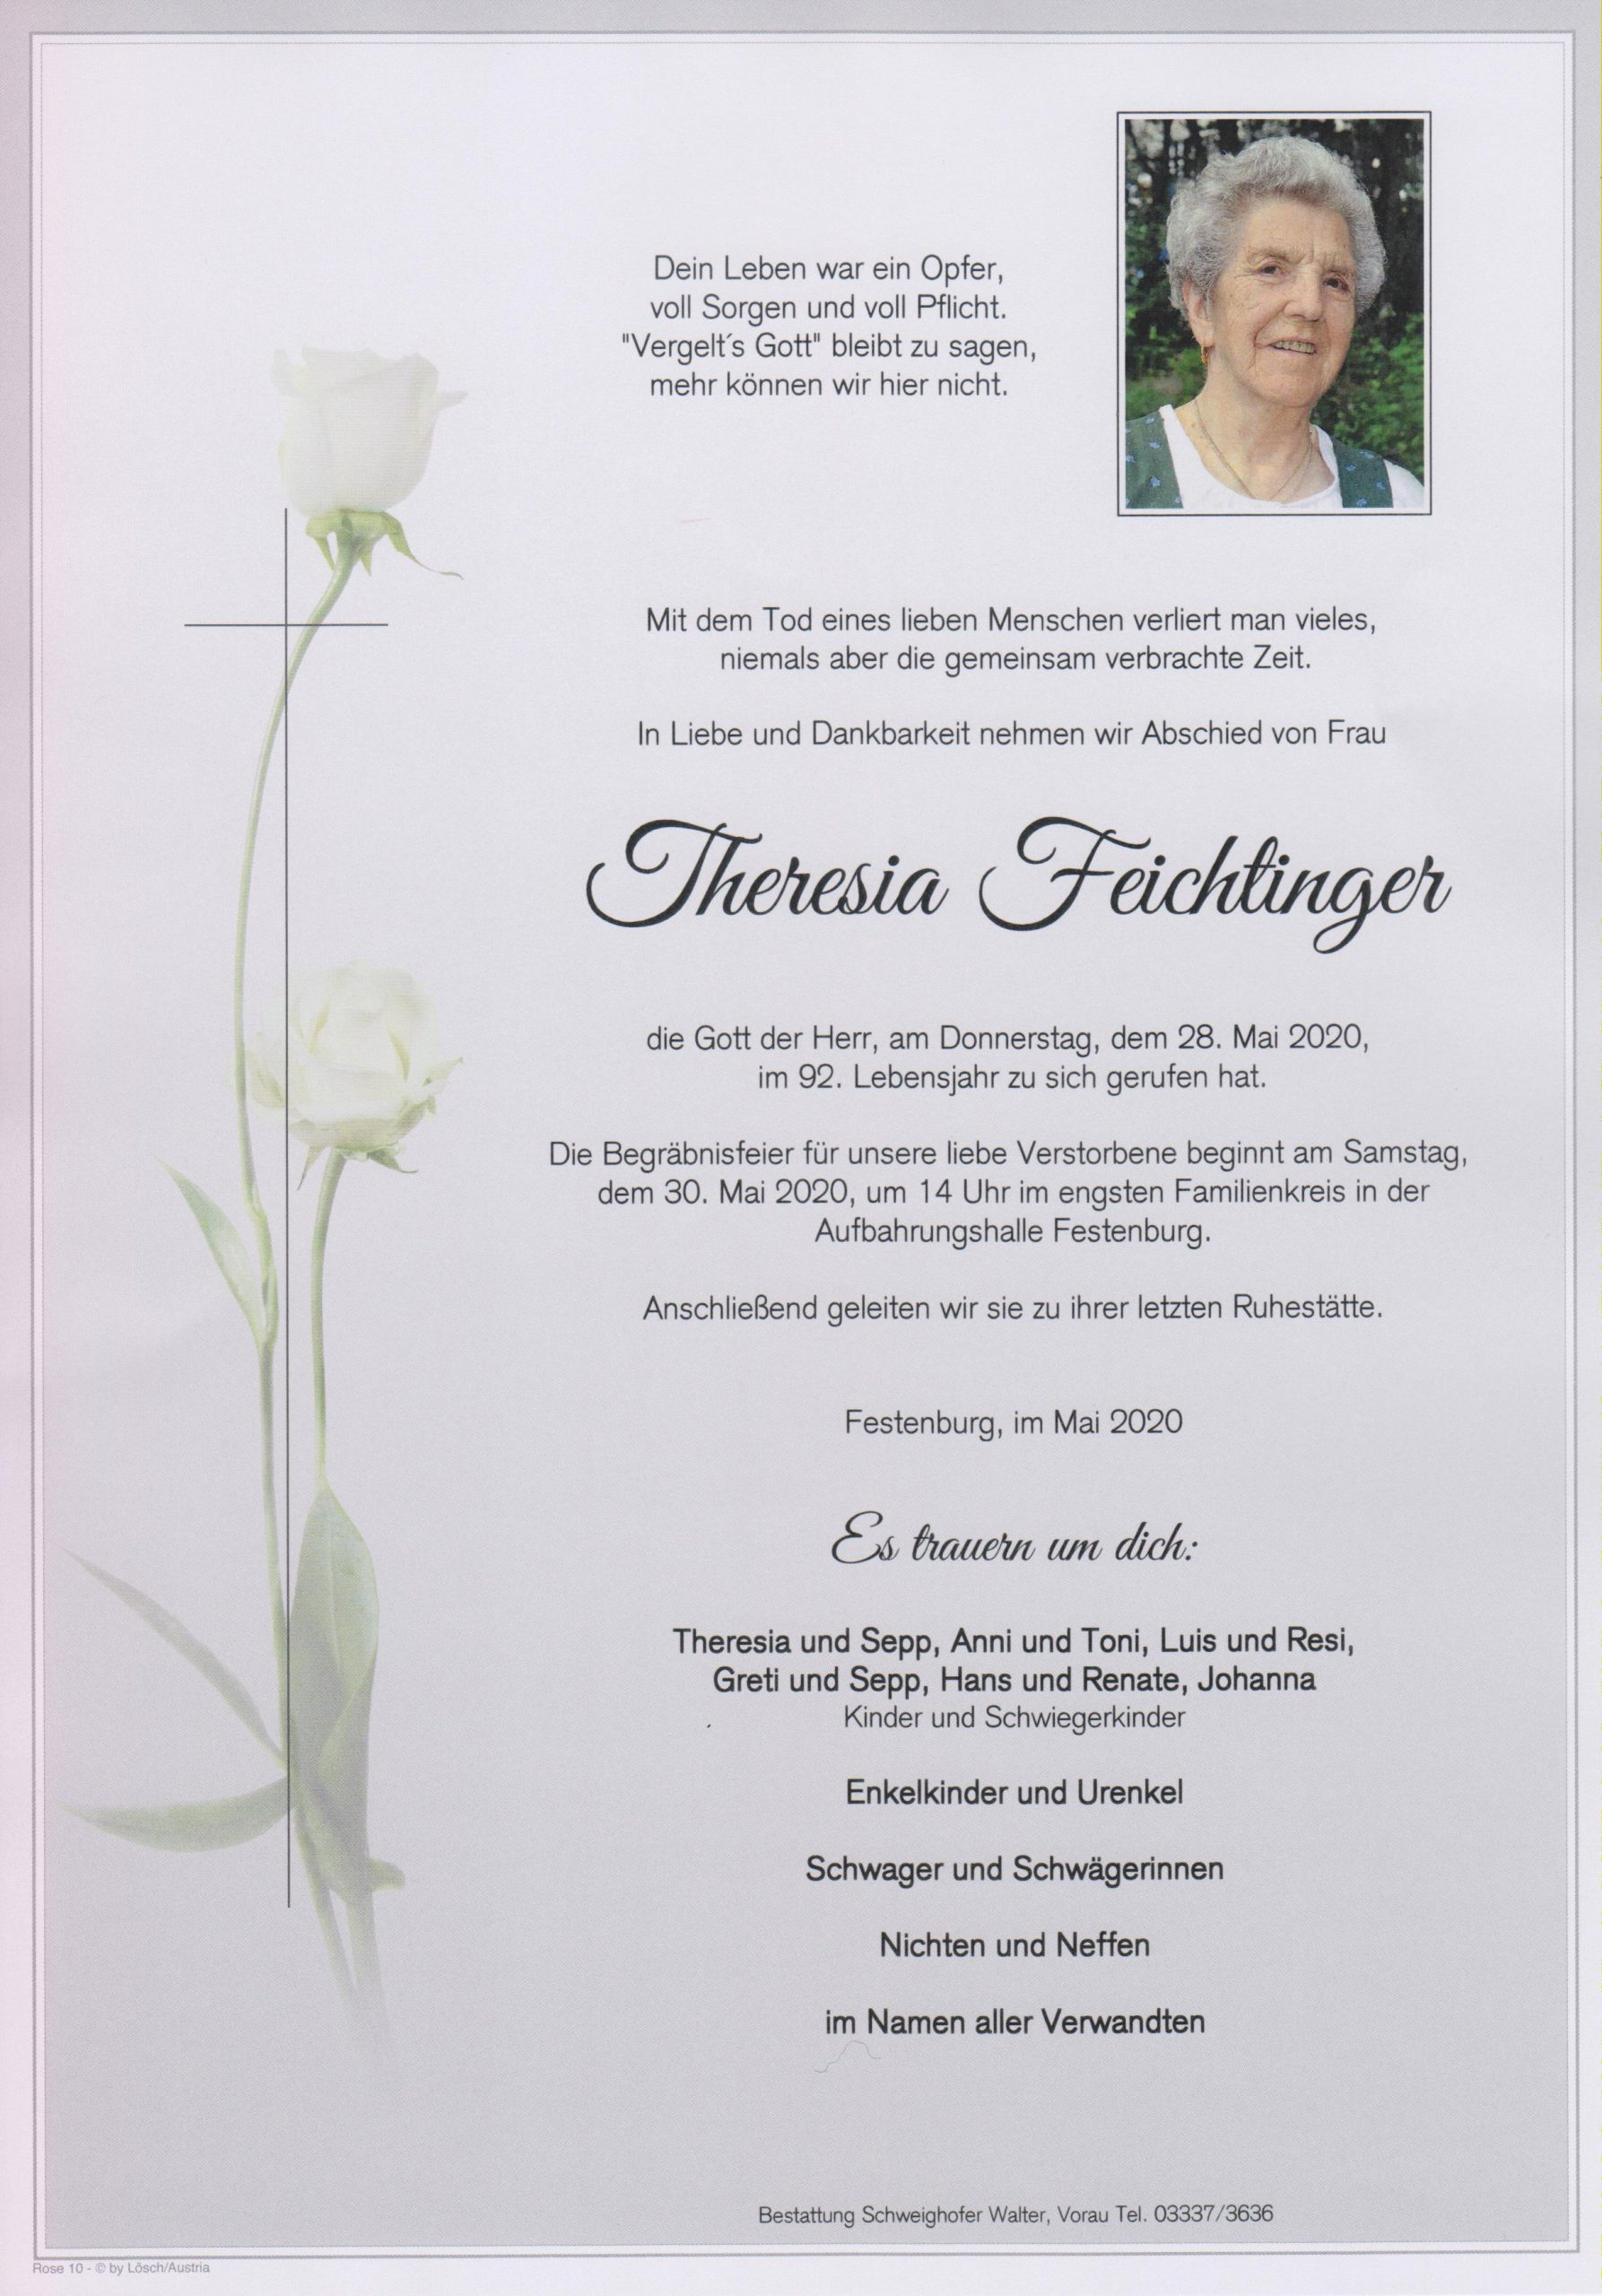 Theresia Feichtinger